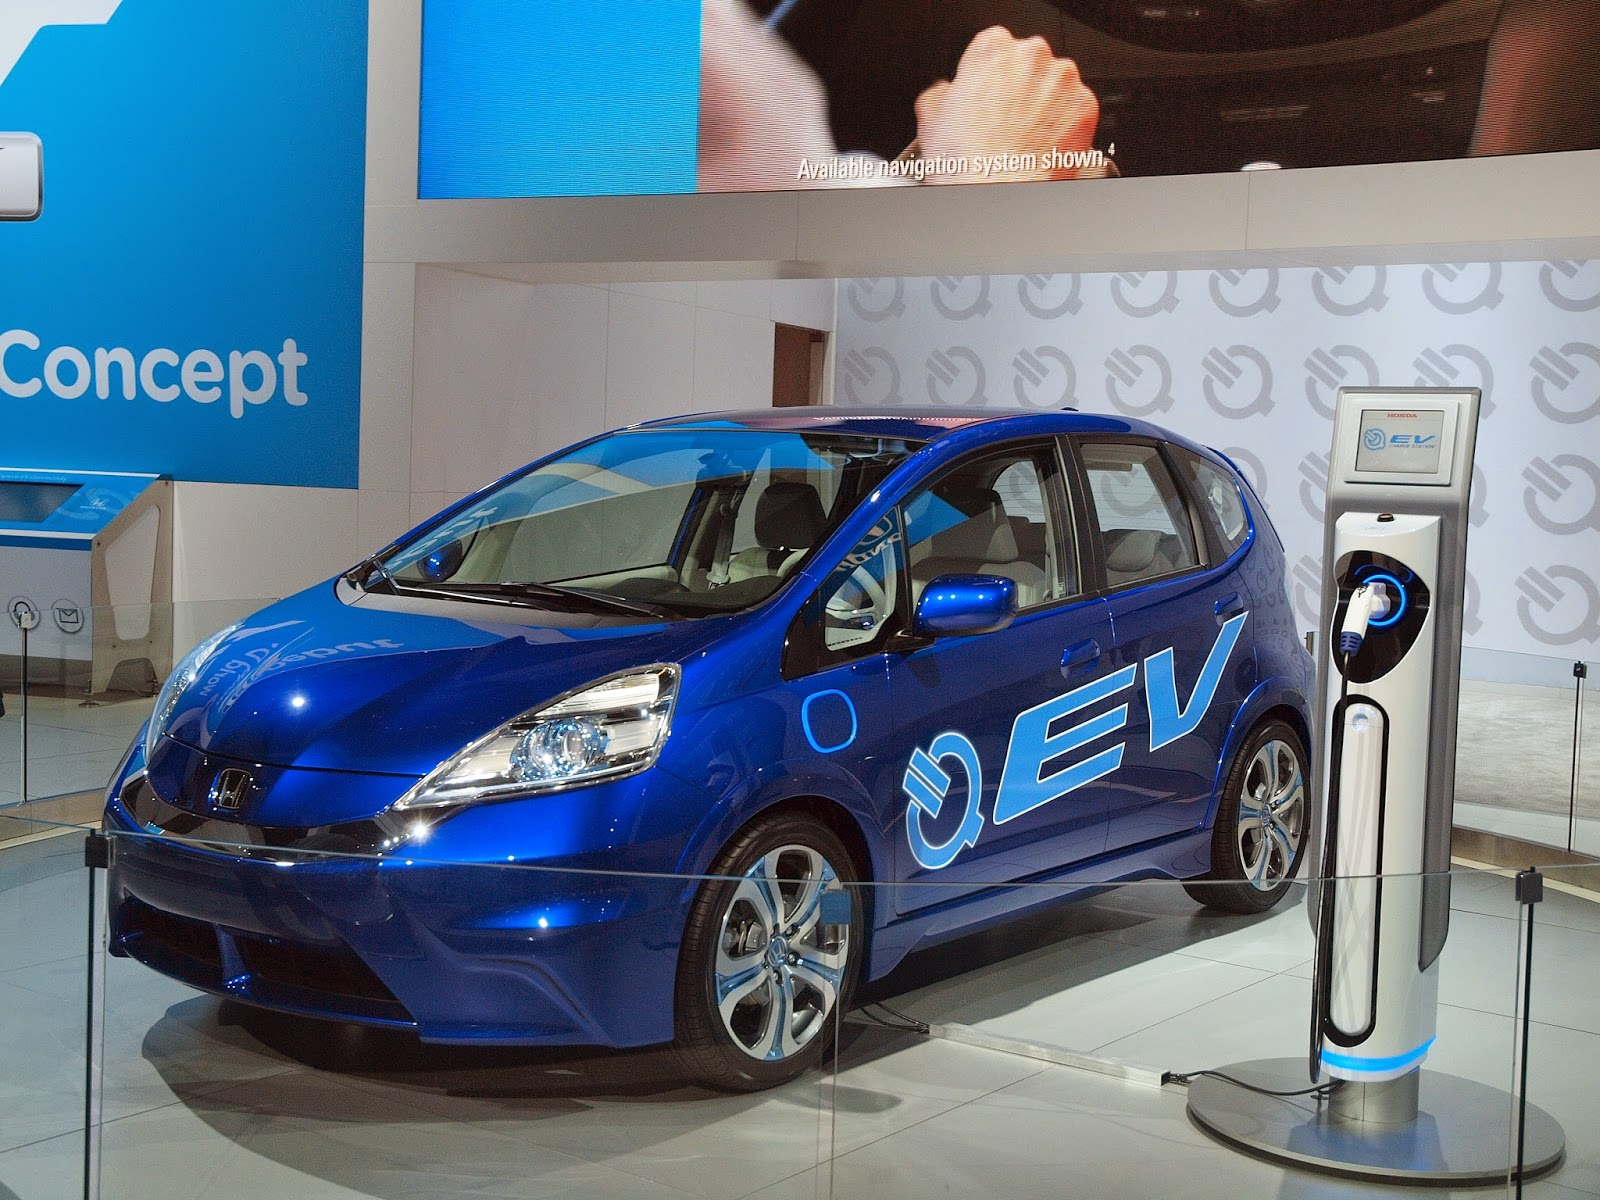 Honda Fit EV concept unveiled at the 2010 Los Angeles Auto Show.